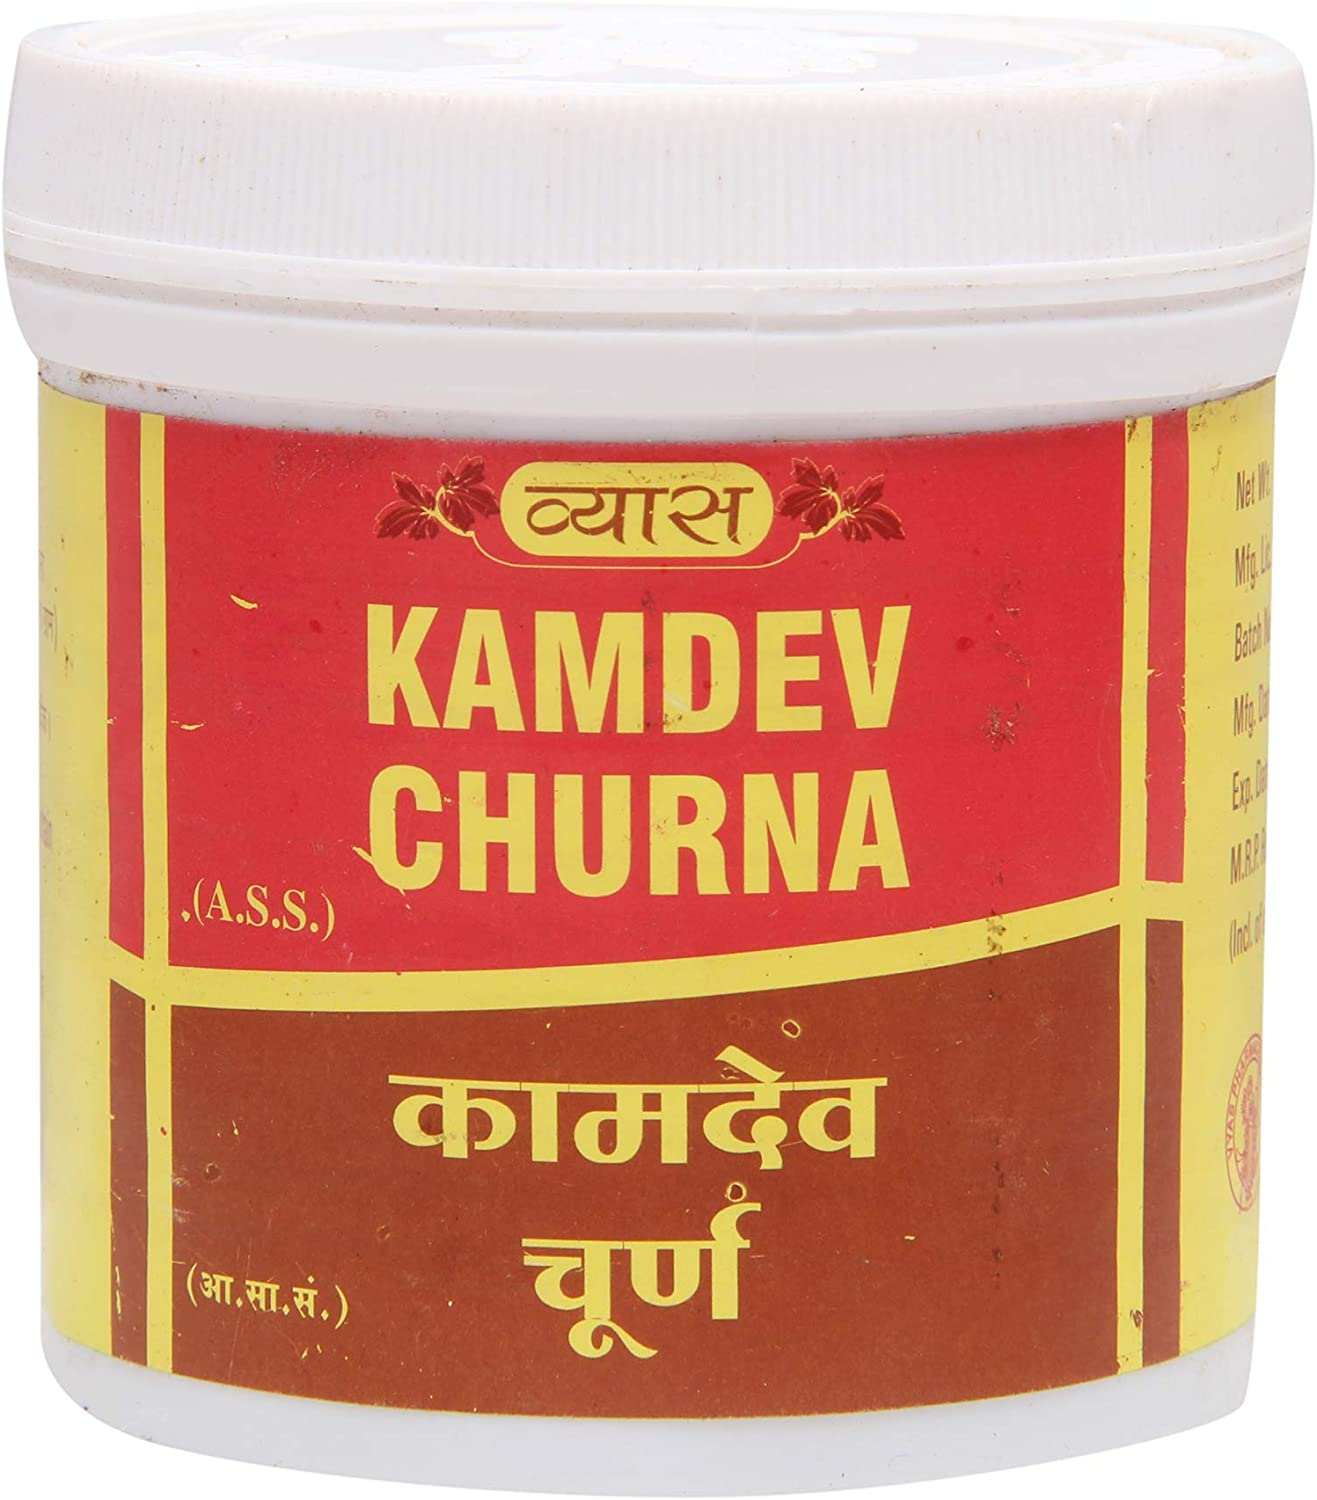 Ayucine Forever Vyas Kamdev Churna All stores are sold g Cheap mail order shopping 100